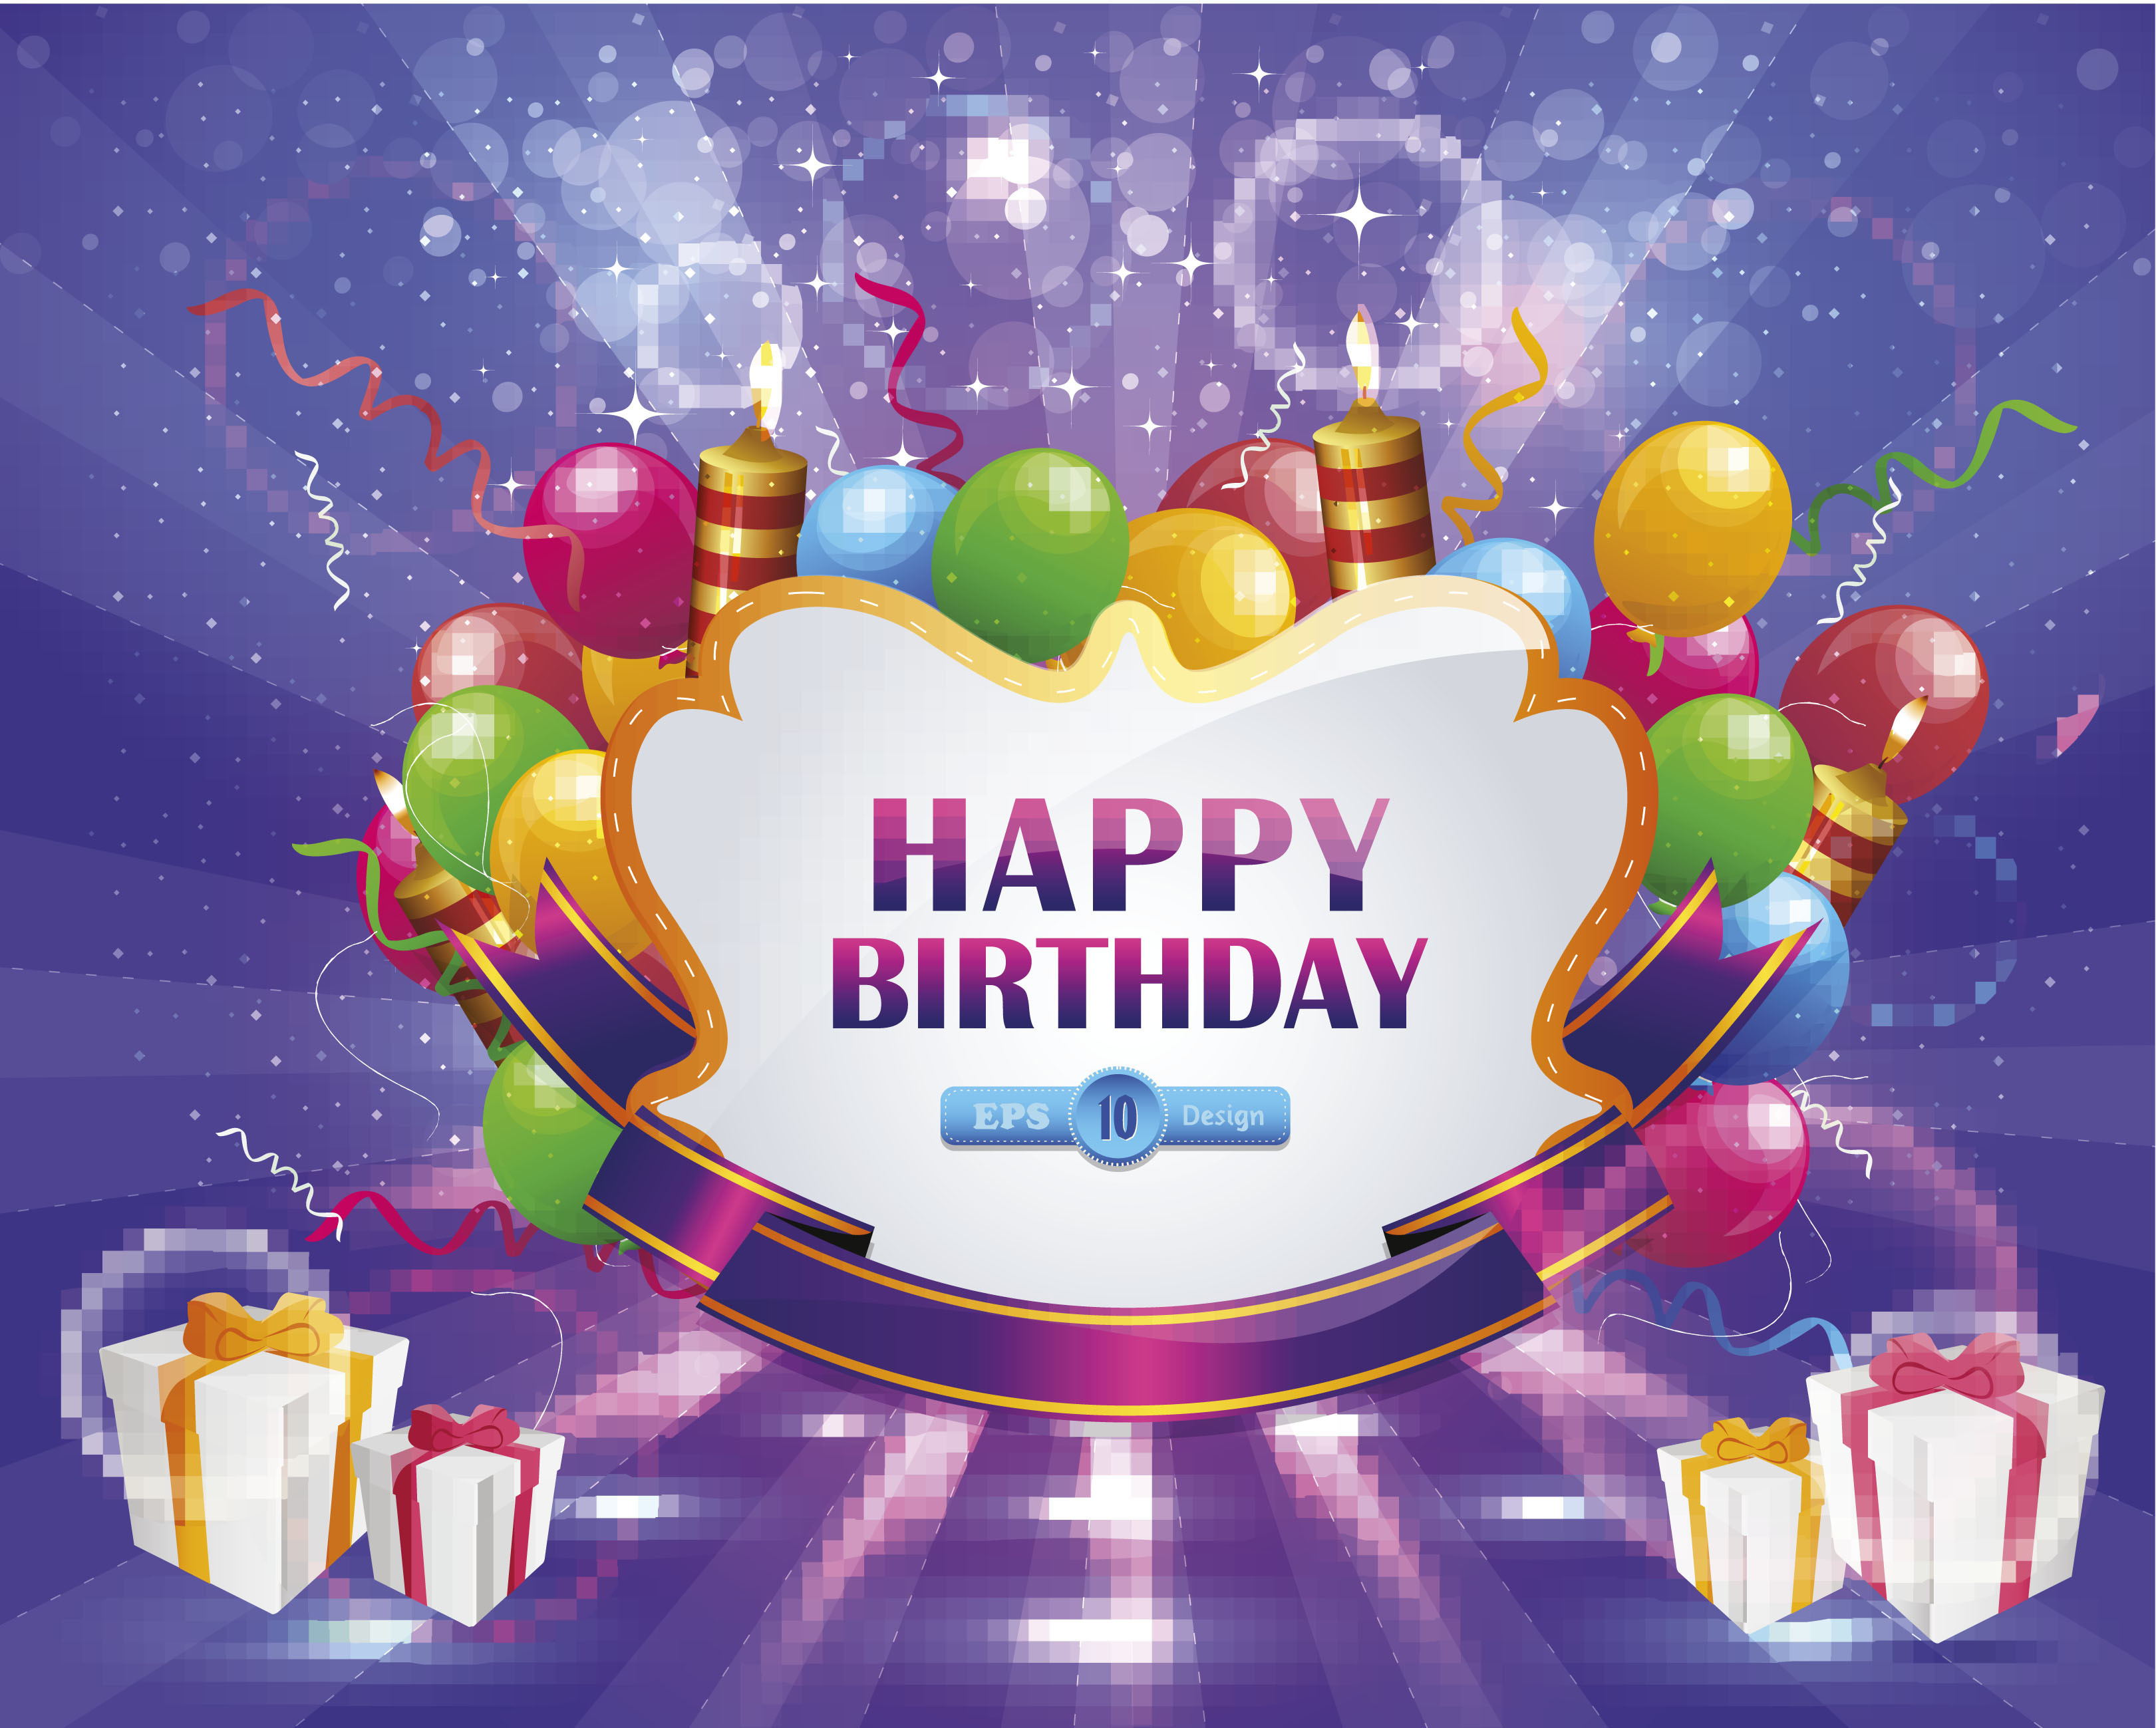 Best ideas about Birthday Wishes Images Free Download . Save or Pin Beautiful picture with congratulations for birthday Now.